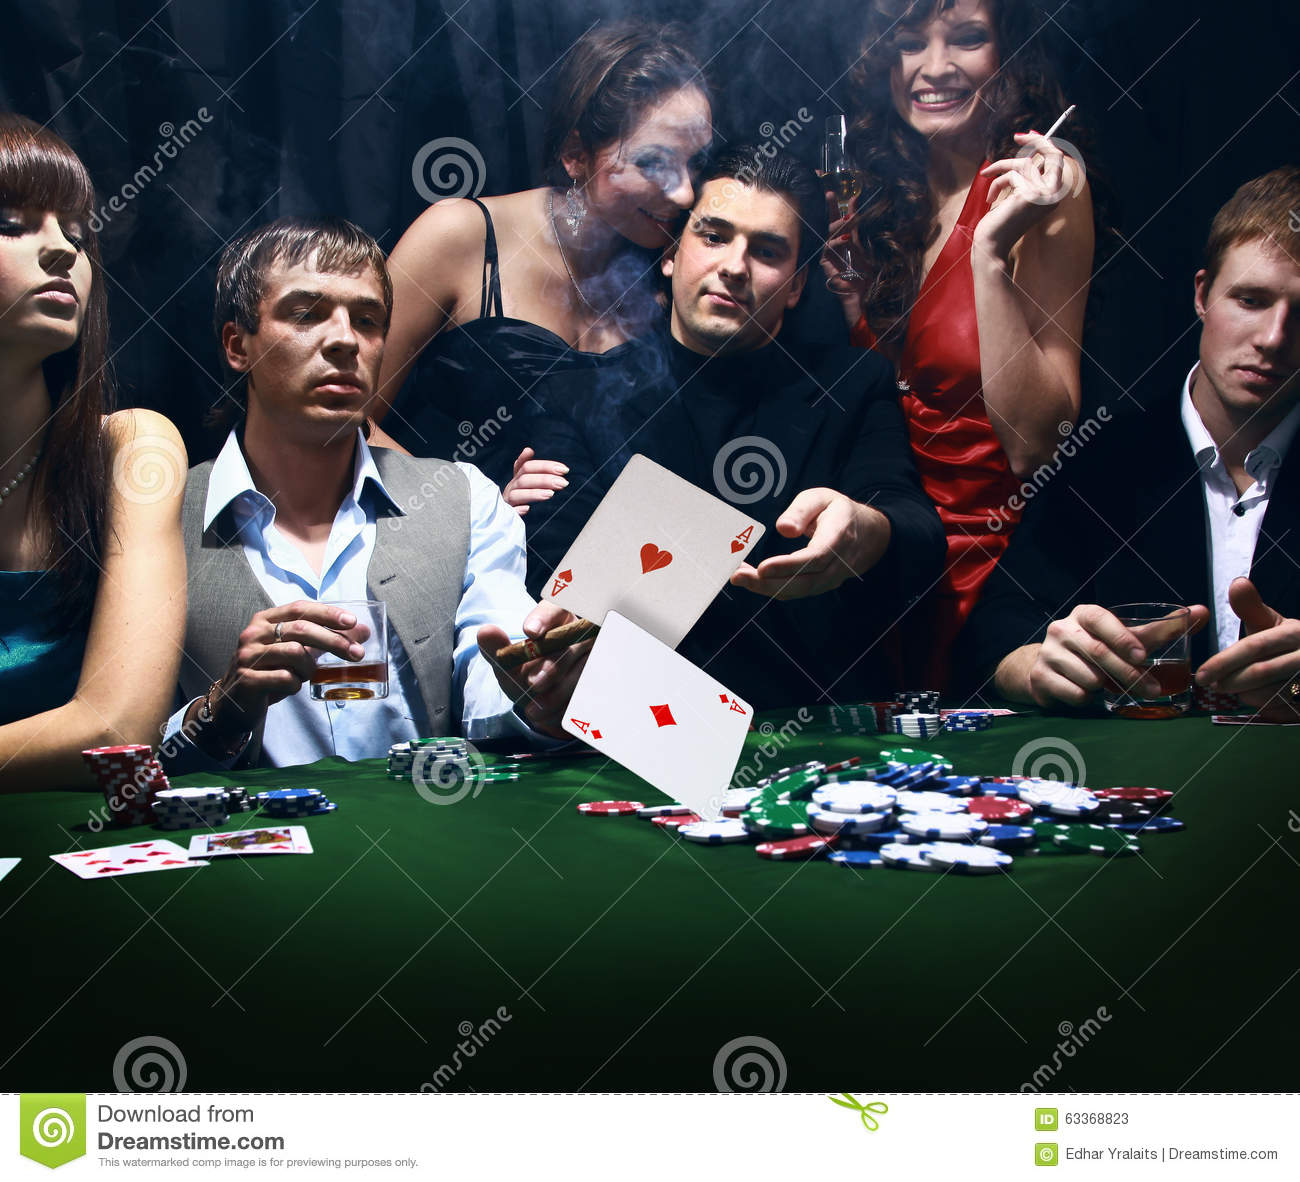 How many people can play poker